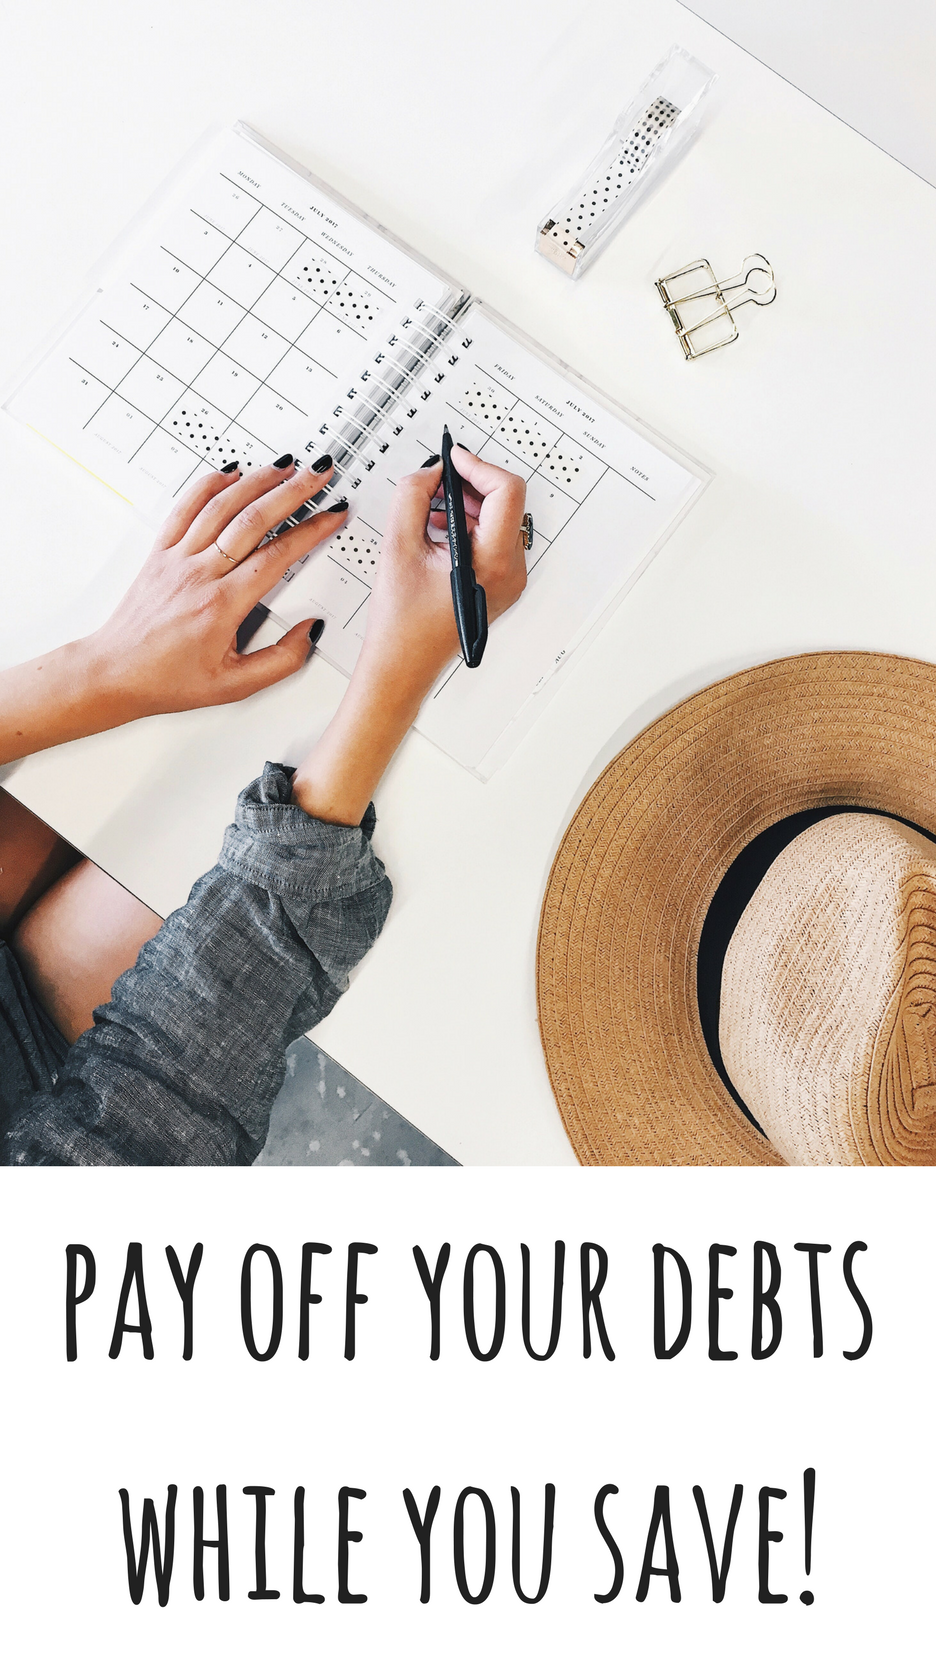 Pay off your debts while you save. It's often suggested you should clear your debts before paying into a savings account but I'm making a case for saving while you pay towards your debts. This article shows you how.